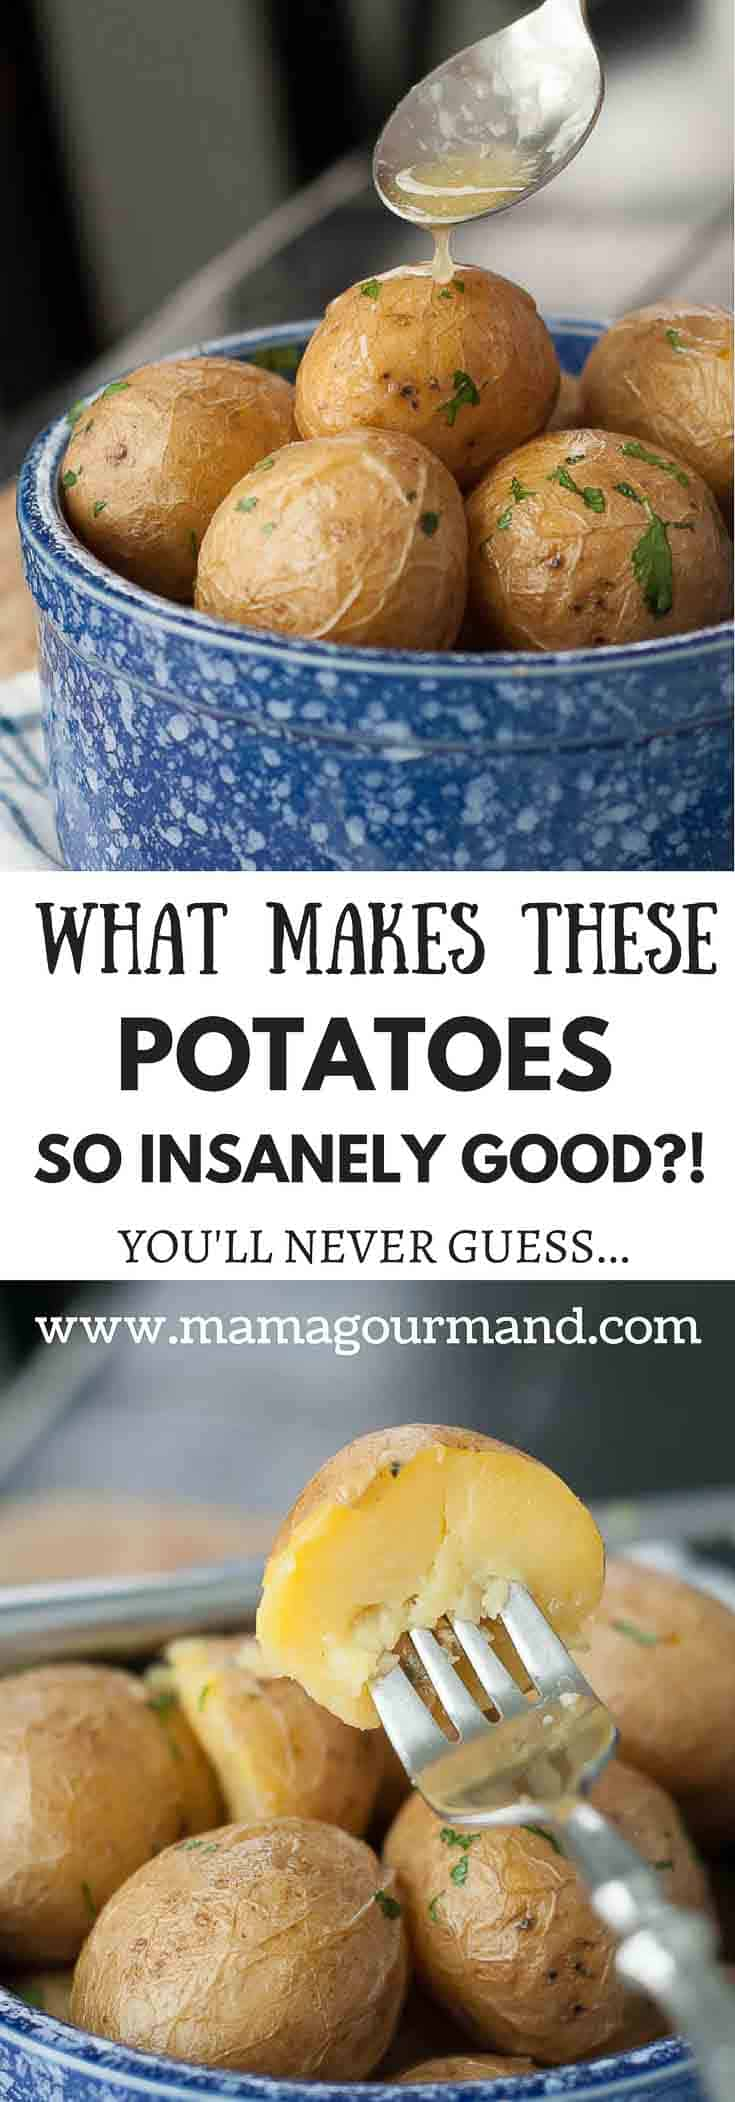 Boiled Salt Potatoes have an insanely creamy texture inside because of how they are made. This ridiculously easy side dish always gets rave reviews, but people can't believe how simple the recipe is. #boiledpotatoes #easysidedish #glutenfreeside #holidaydinner #potatoes #saltpotatoes https://www.mamagourmand.com